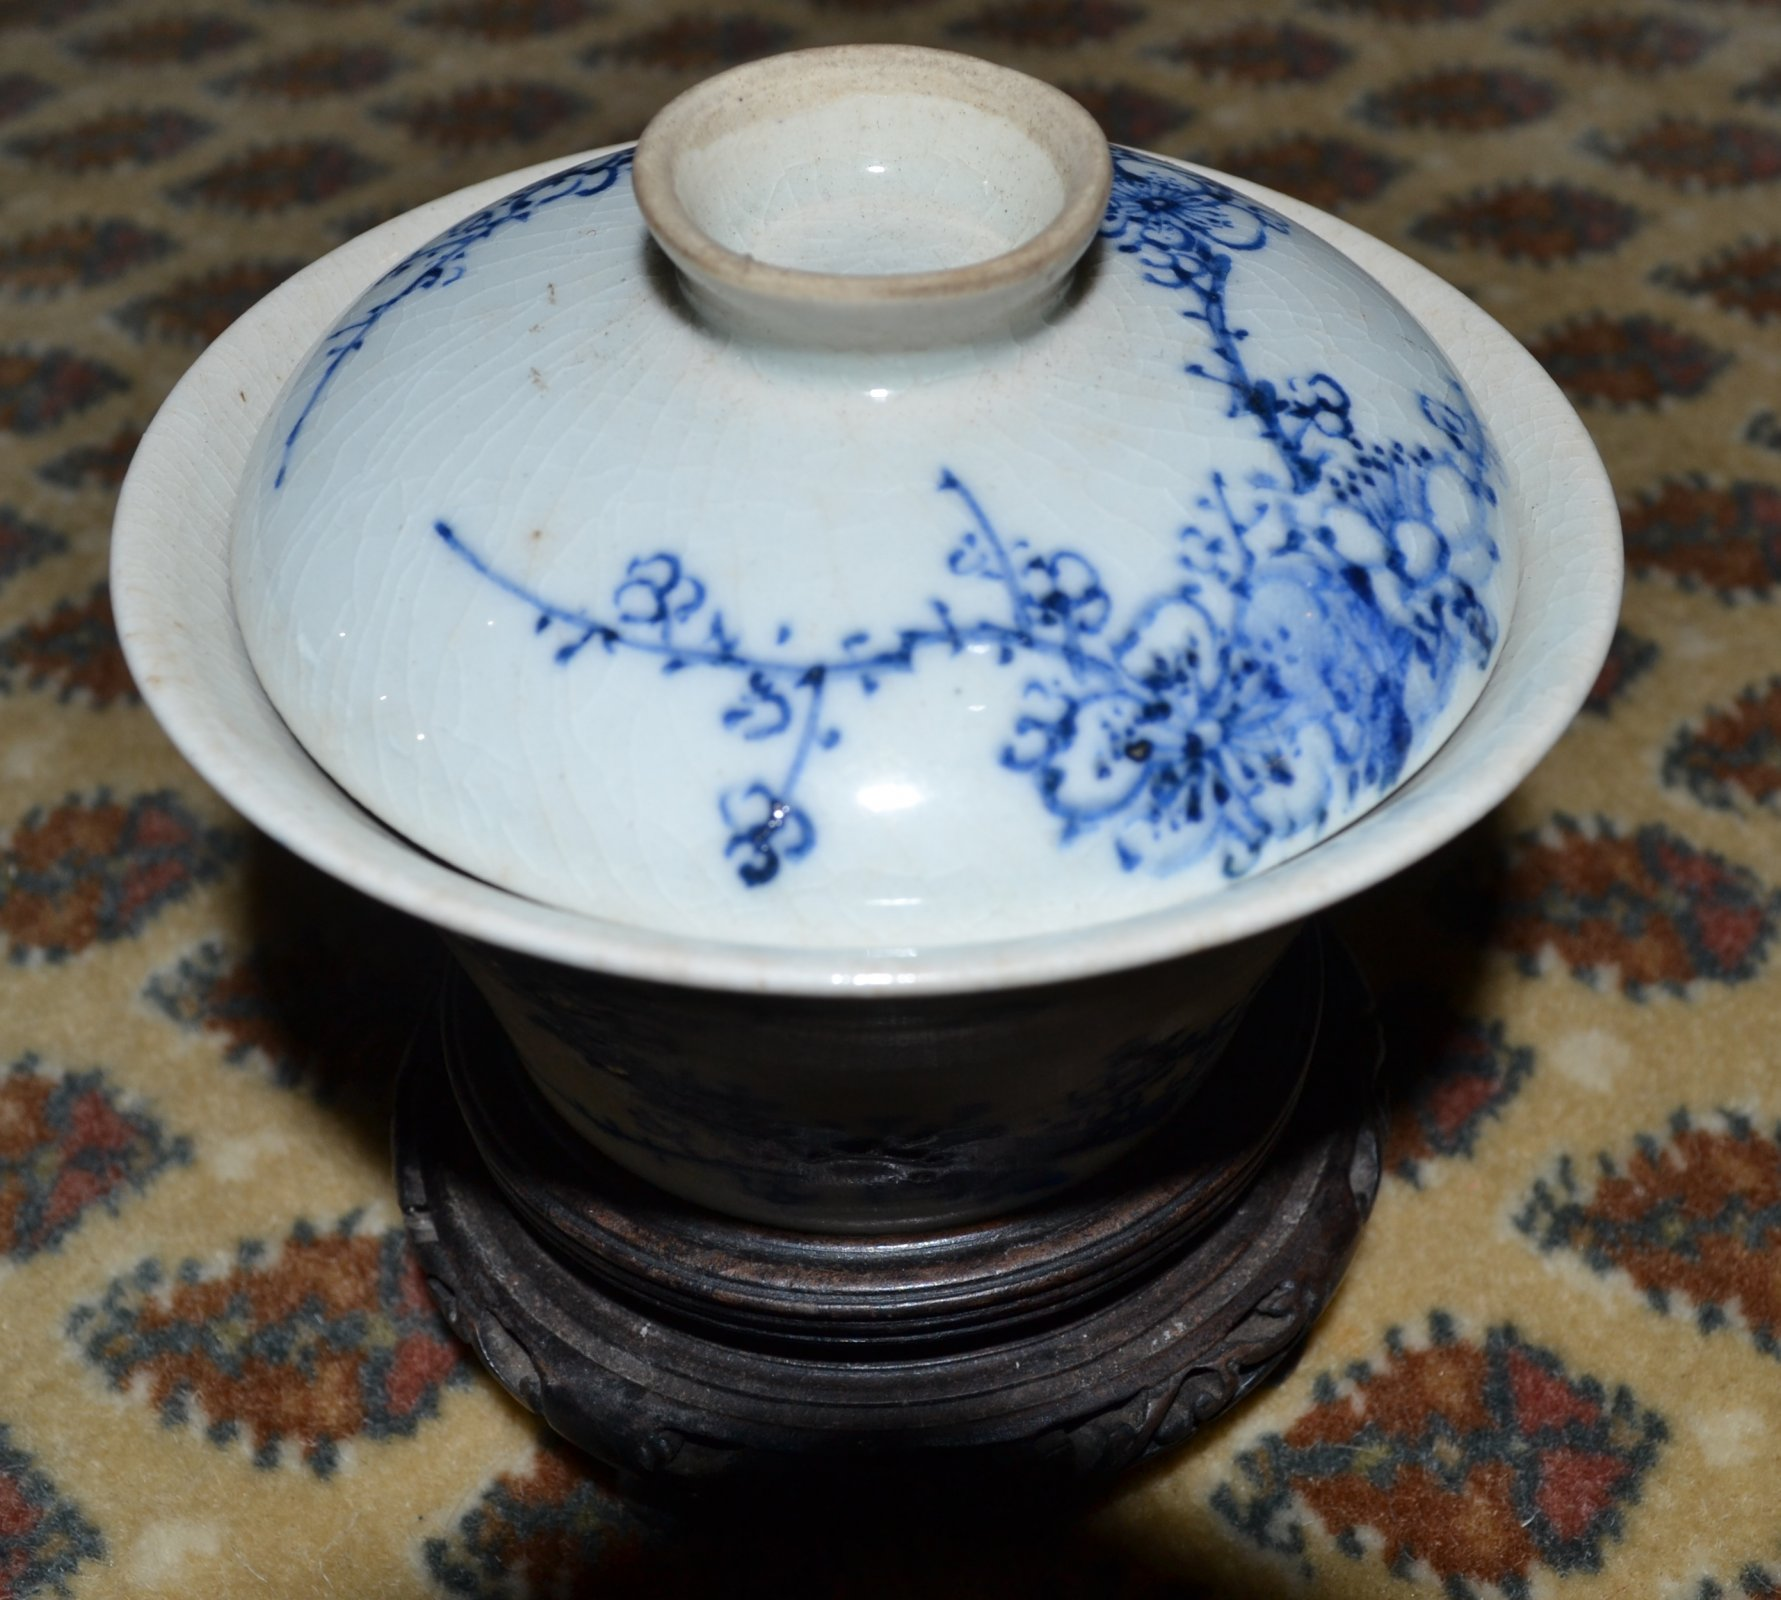 Chinese Blue and White rice dish with fitted lid